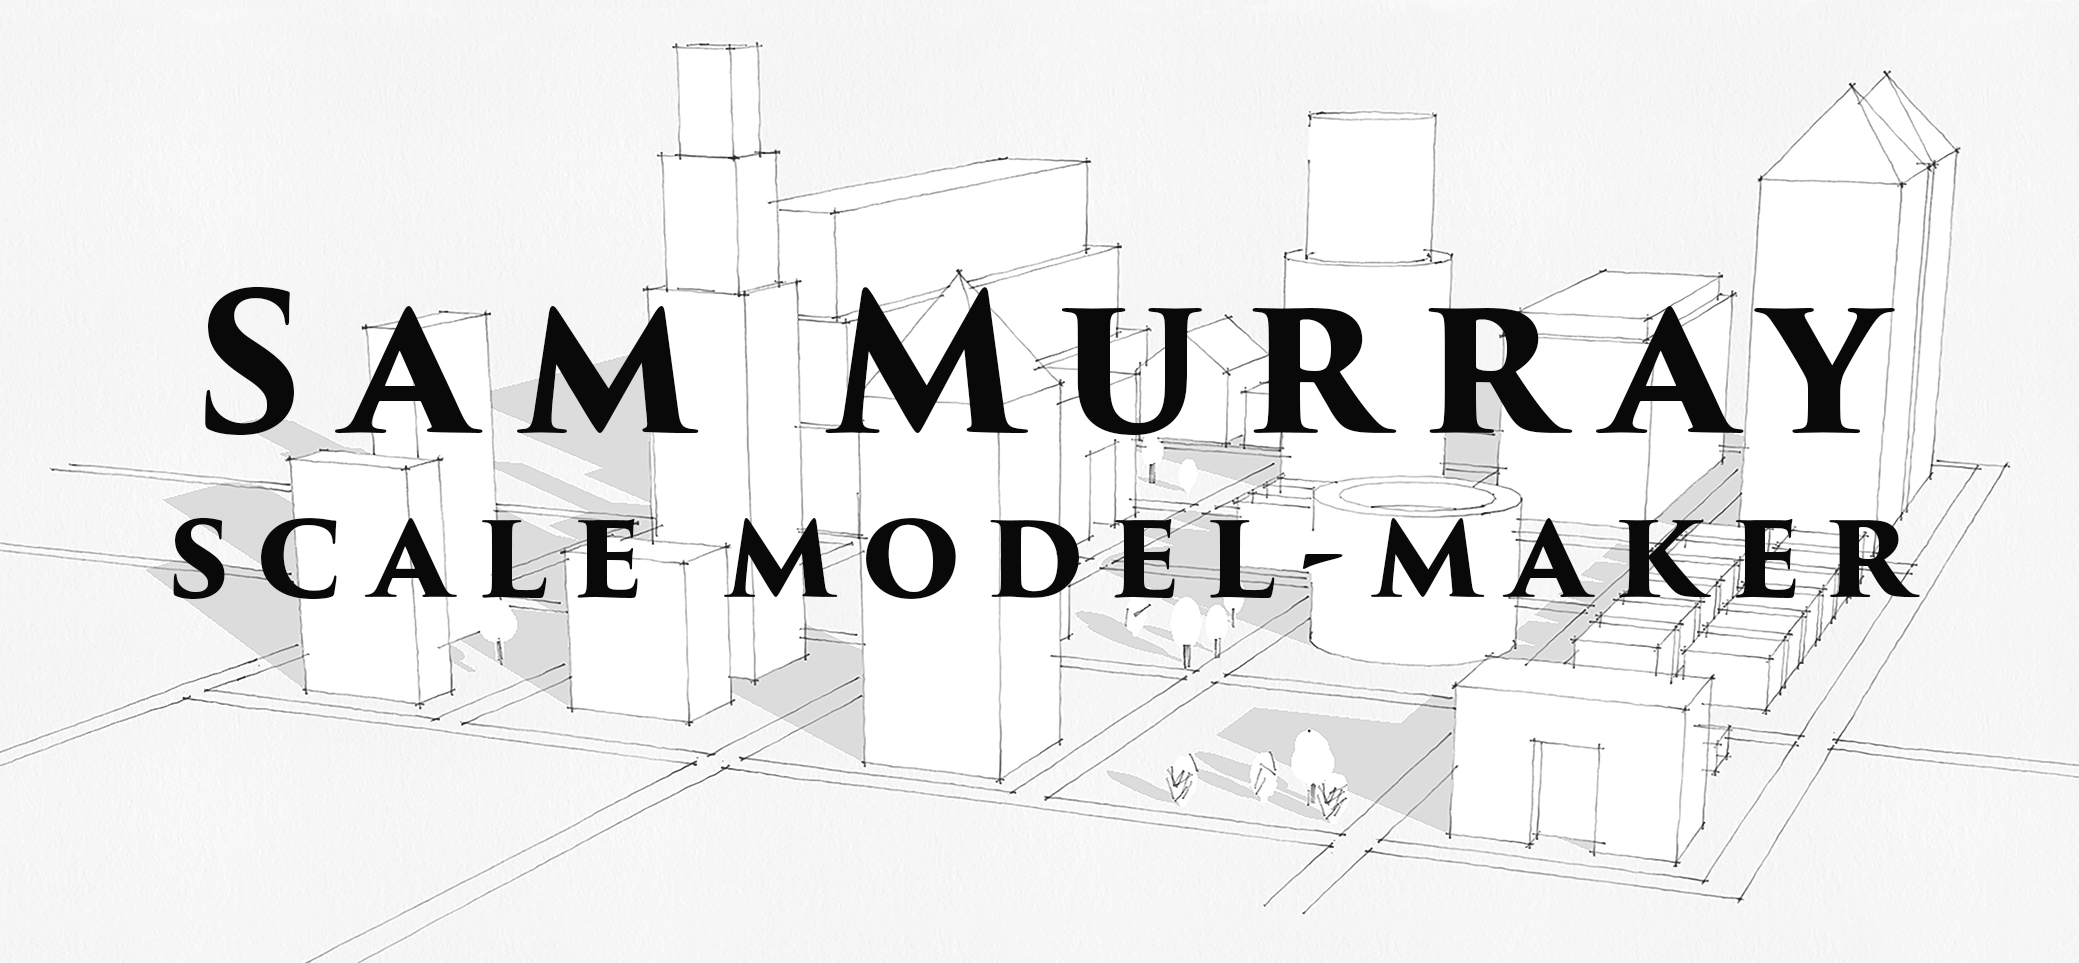 Sam Murray             scale model-making